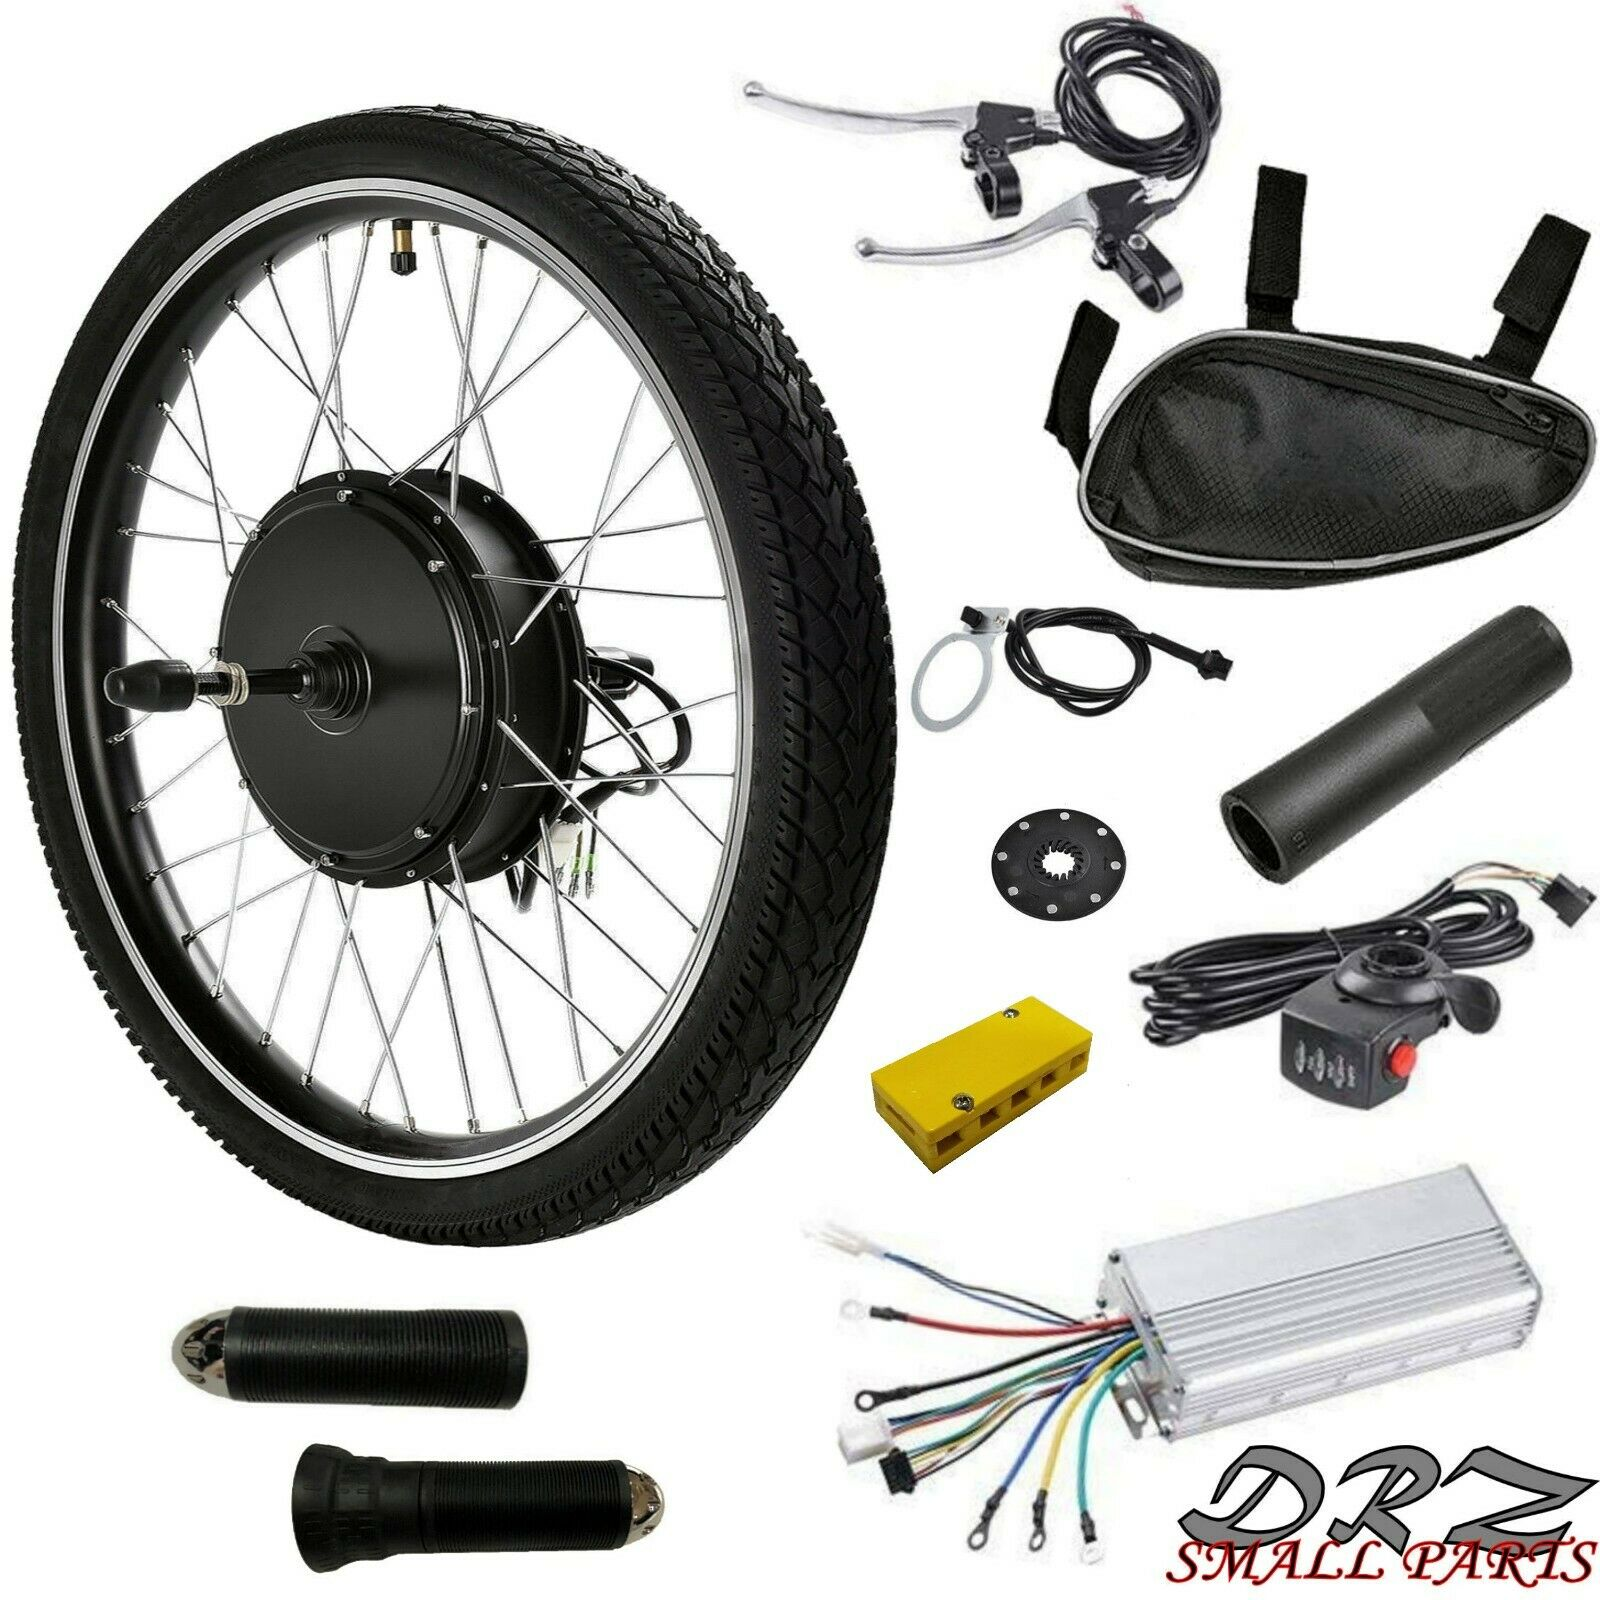 de6bc8721c1 Rear Wheel Hub 36V 500W Kit 26 in Ebike Cycle Bicycle Motor Conversion  Electric nojlwz4160-Electric Bikes